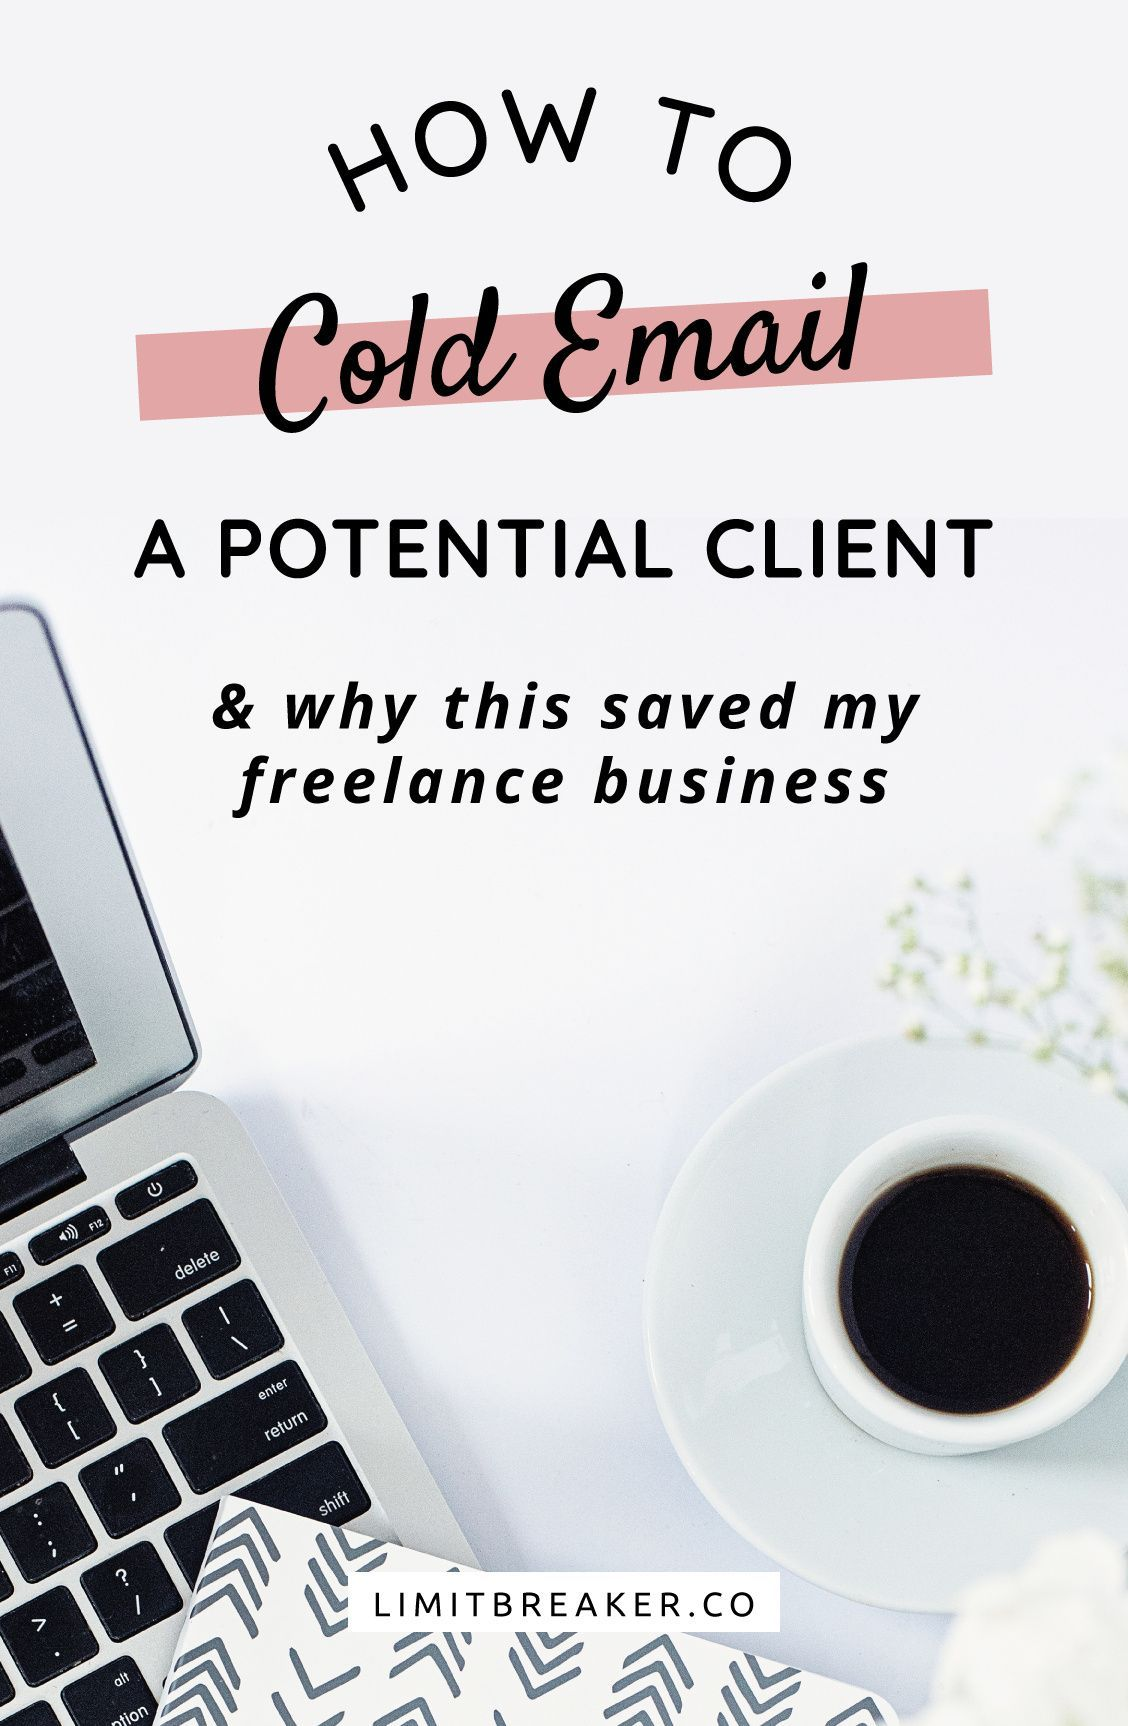 Learn how to cold email a potential client with this guide and video. Including how to find email addresses and track your cold emails.    Cold emailing saved my freelance business.  #freelancetips #getmoreclients #bookmoreclients #findyourdreamclient #freelancemarketing #client #coldemail